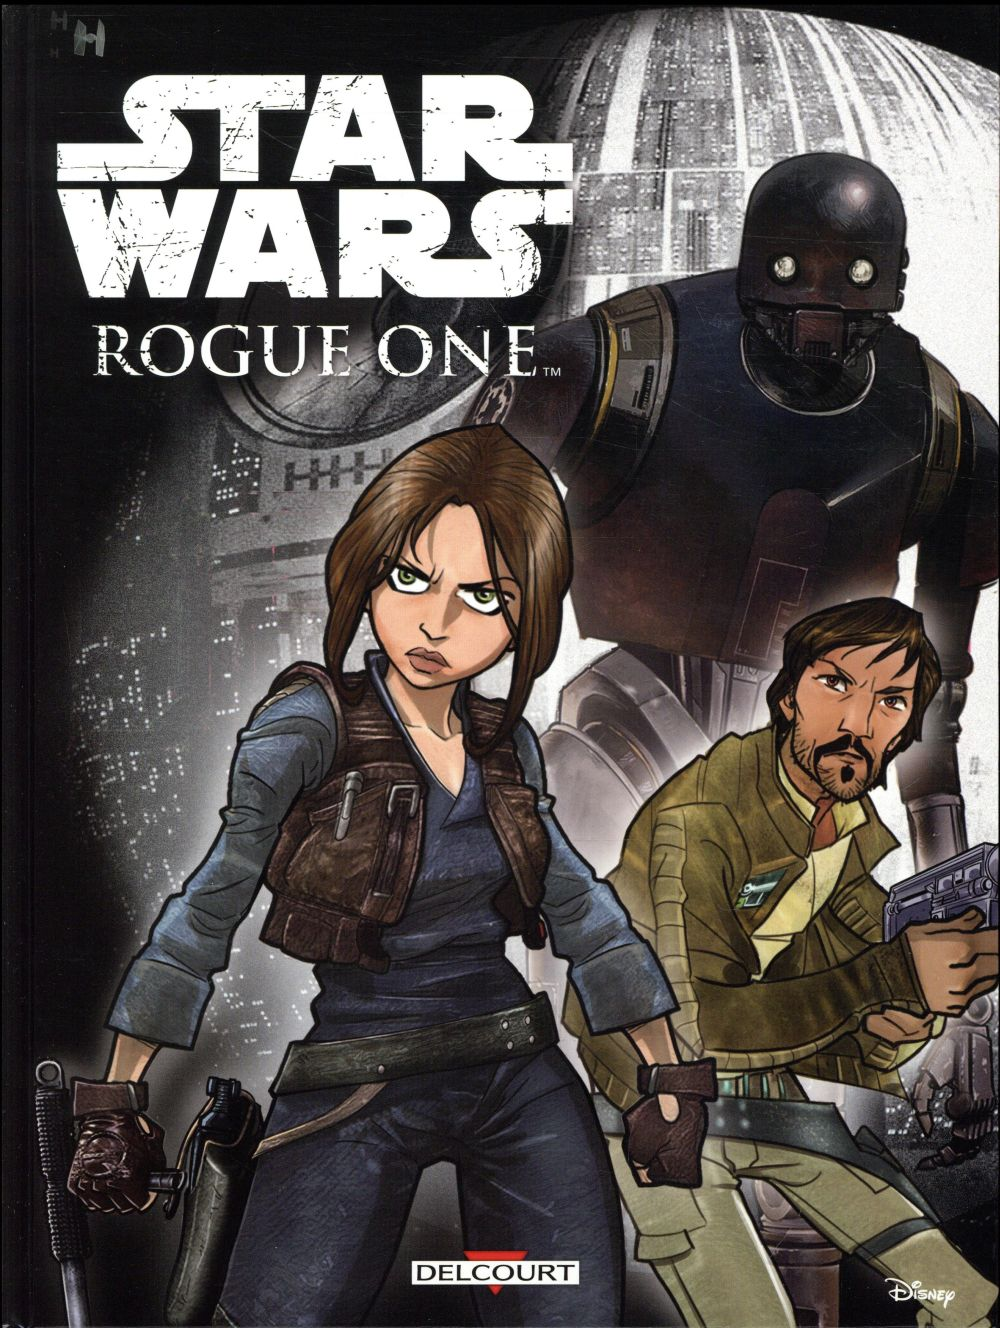 T l charger star wars rogue one gratuitement bookys - Star wars a telecharger gratuitement ...